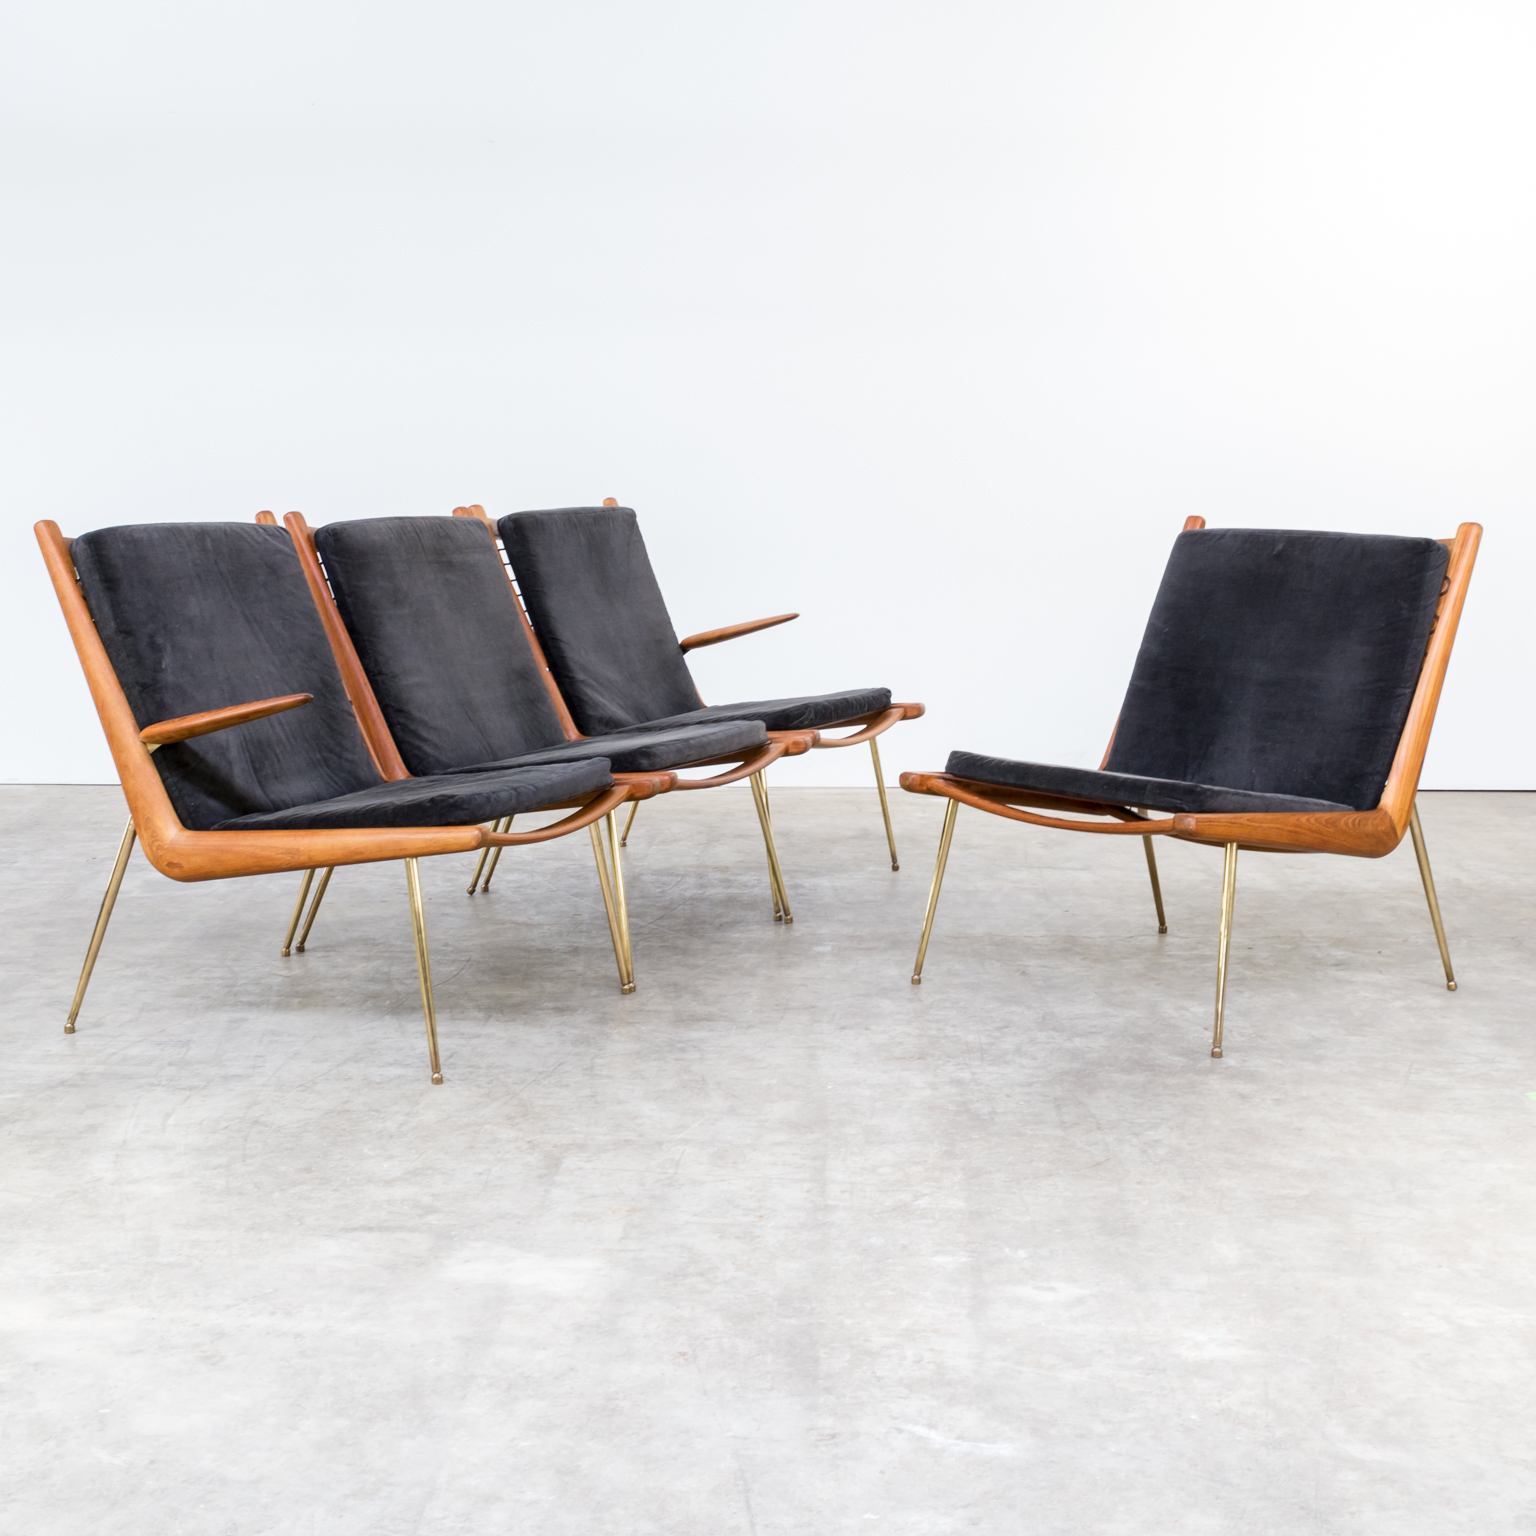 60s peter hvidt and orla m lgaard nielsen boomerang for Designer chairs from the 60s